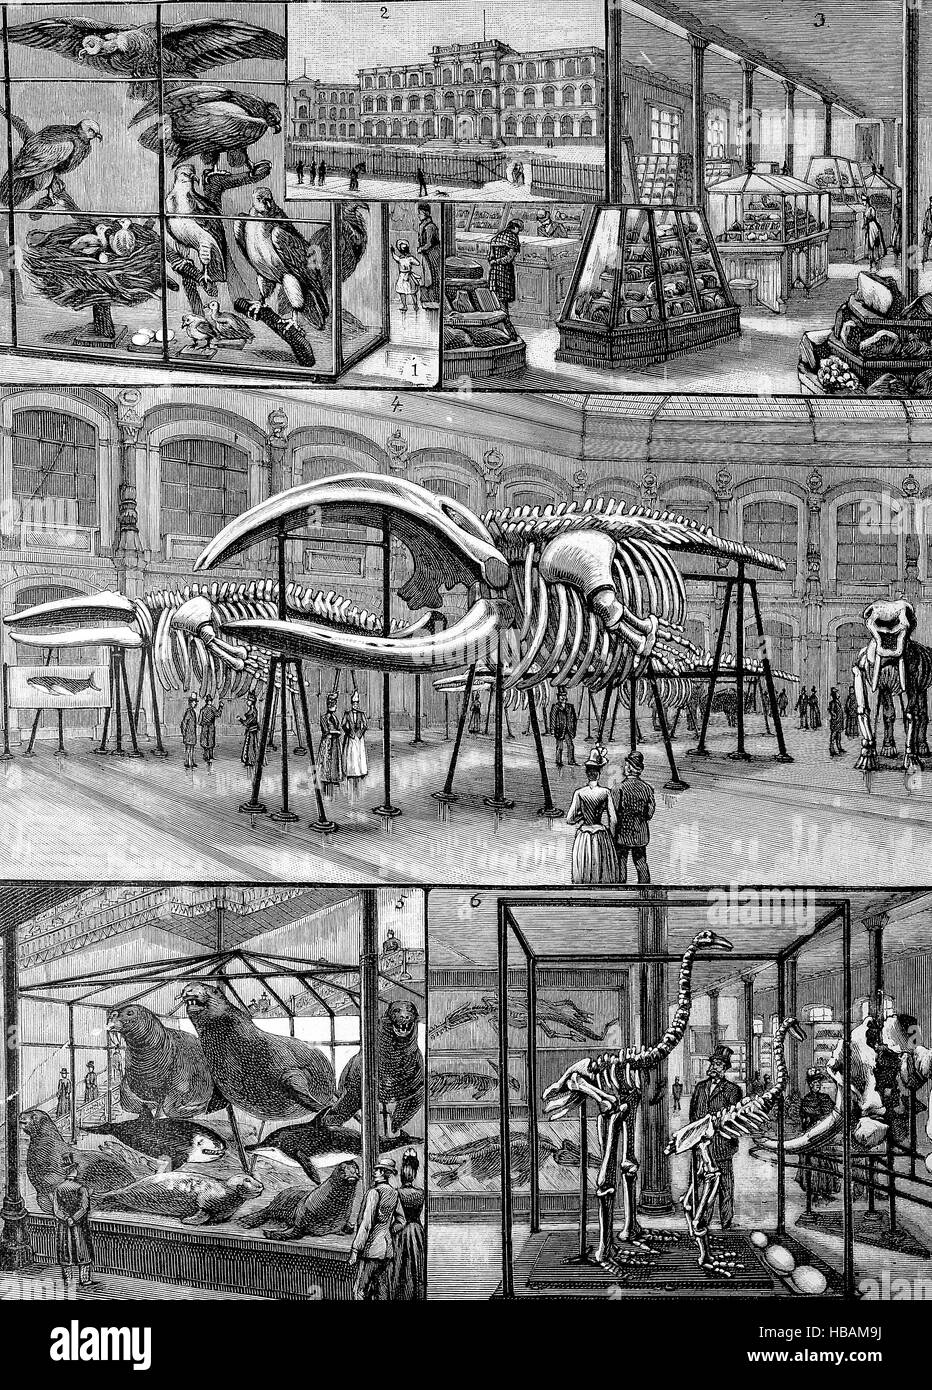 The Museum of Natural History in Berlin, Germany, hictorical illustration from 1880 - Stock Image